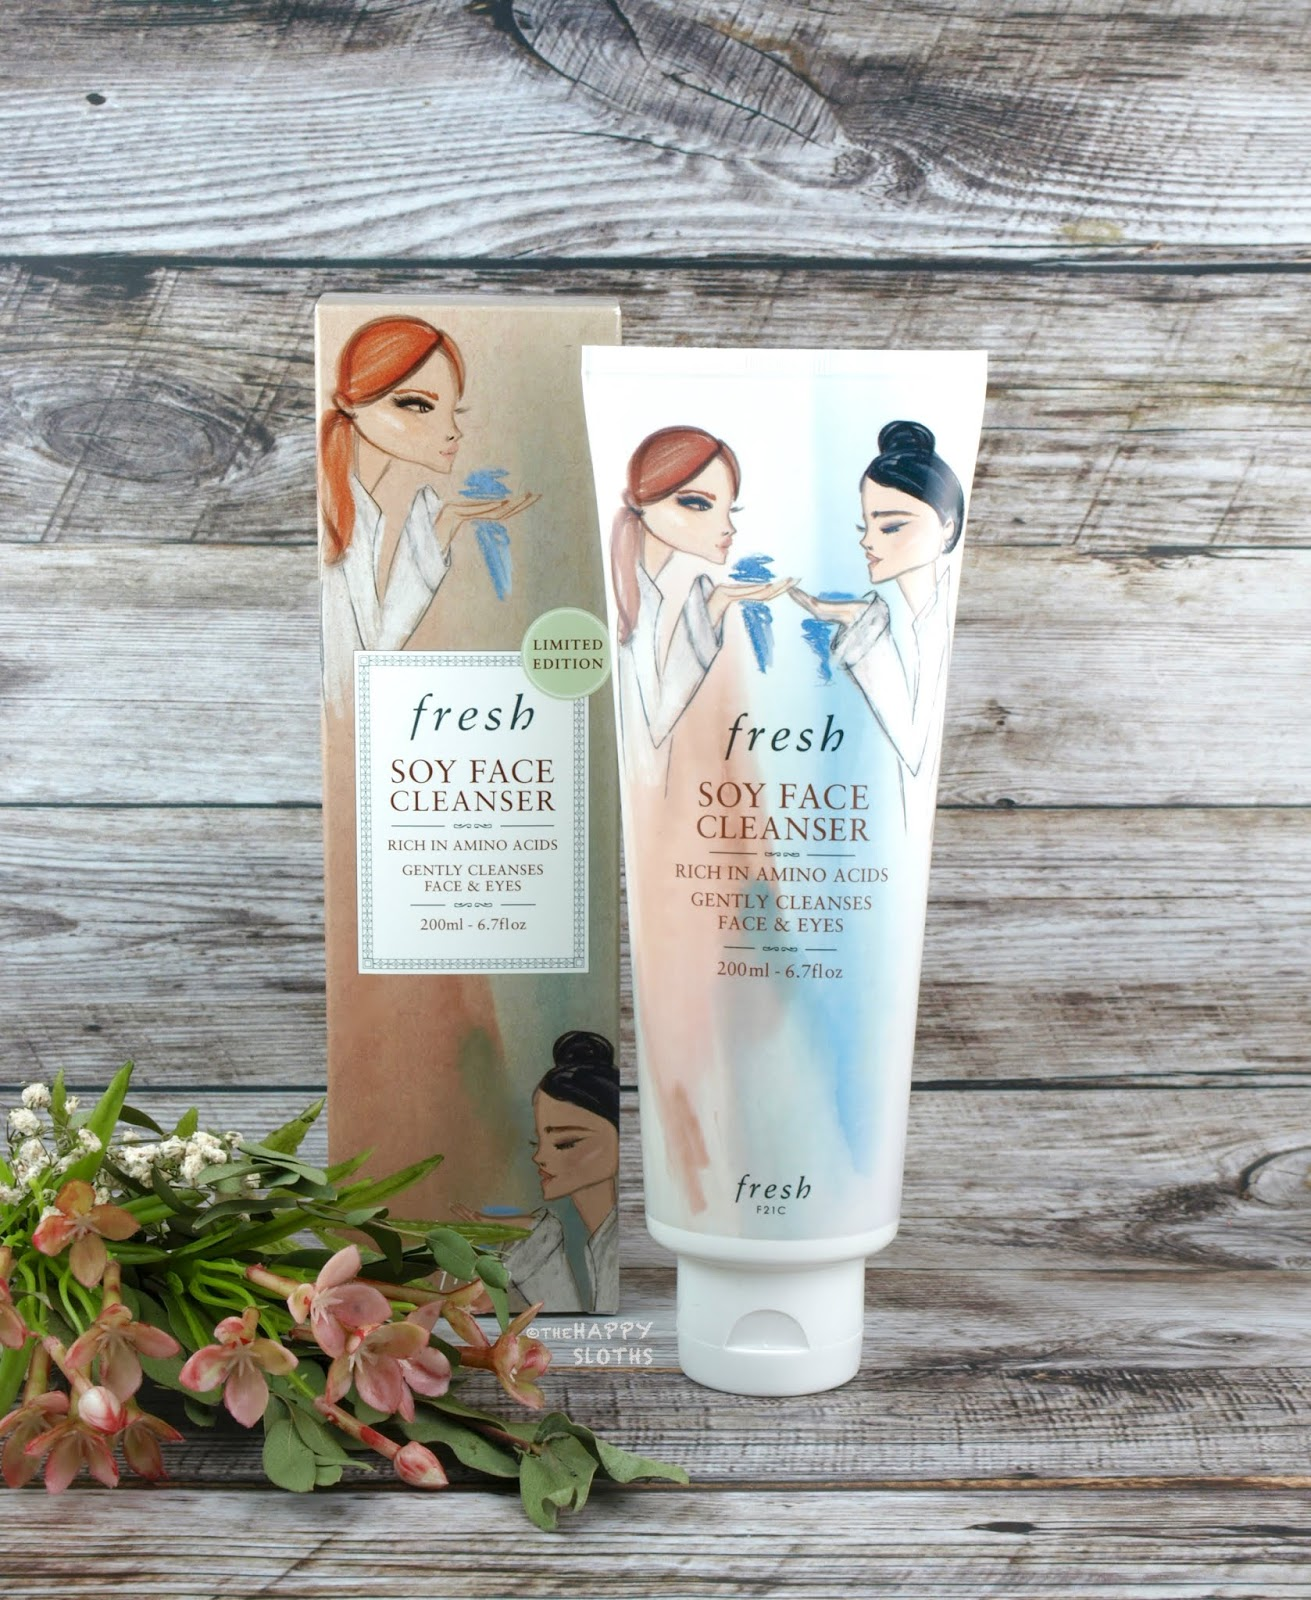 Fresh | Limited Edition Soy Face Cleanser: Review